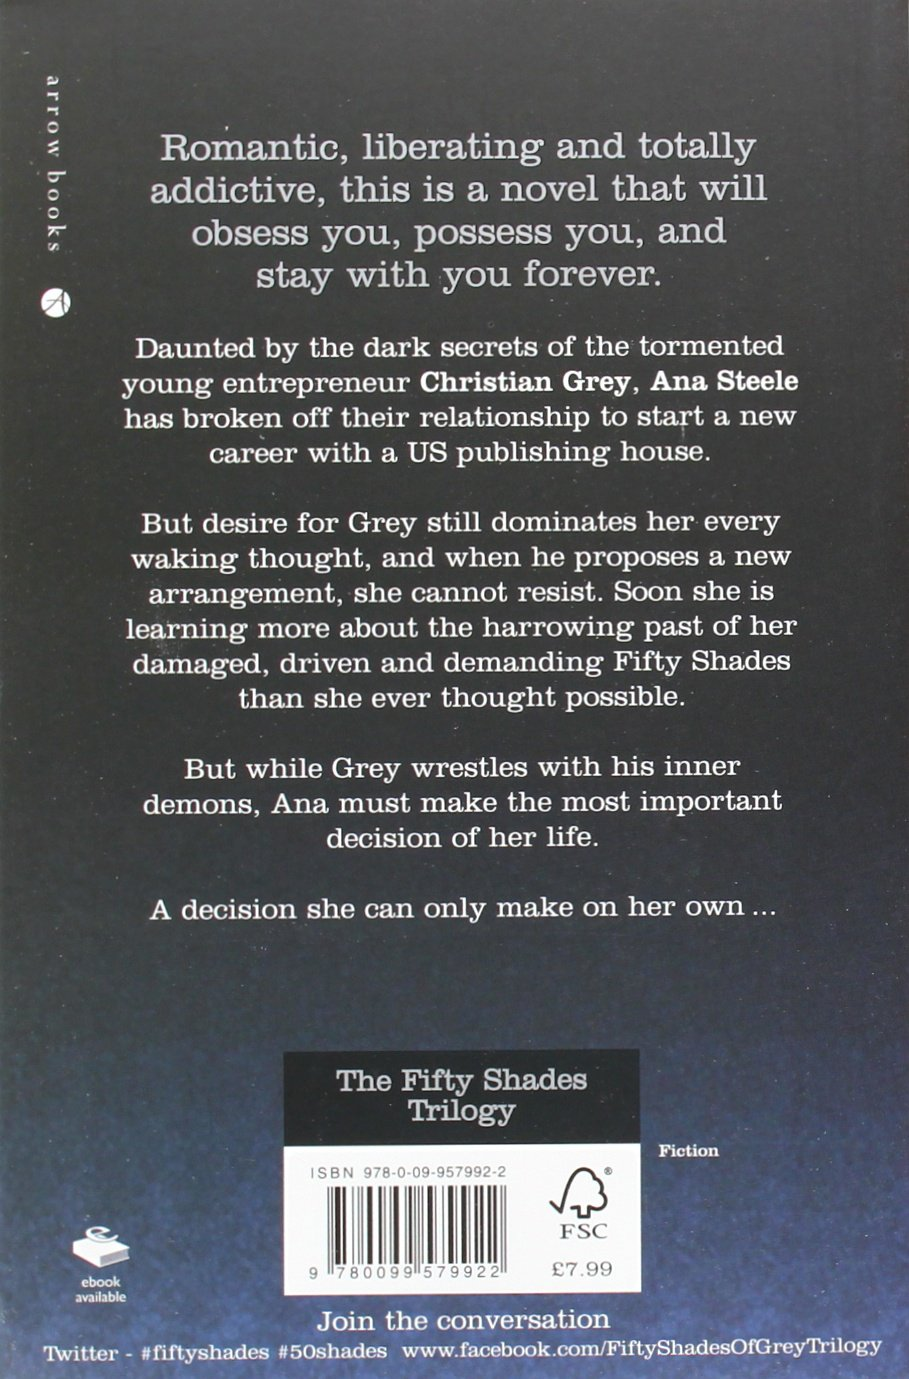 fifty shades trilogy boxed set amazon co uk e l james fifty shades trilogy boxed set amazon co uk e l james 9780099580577 books